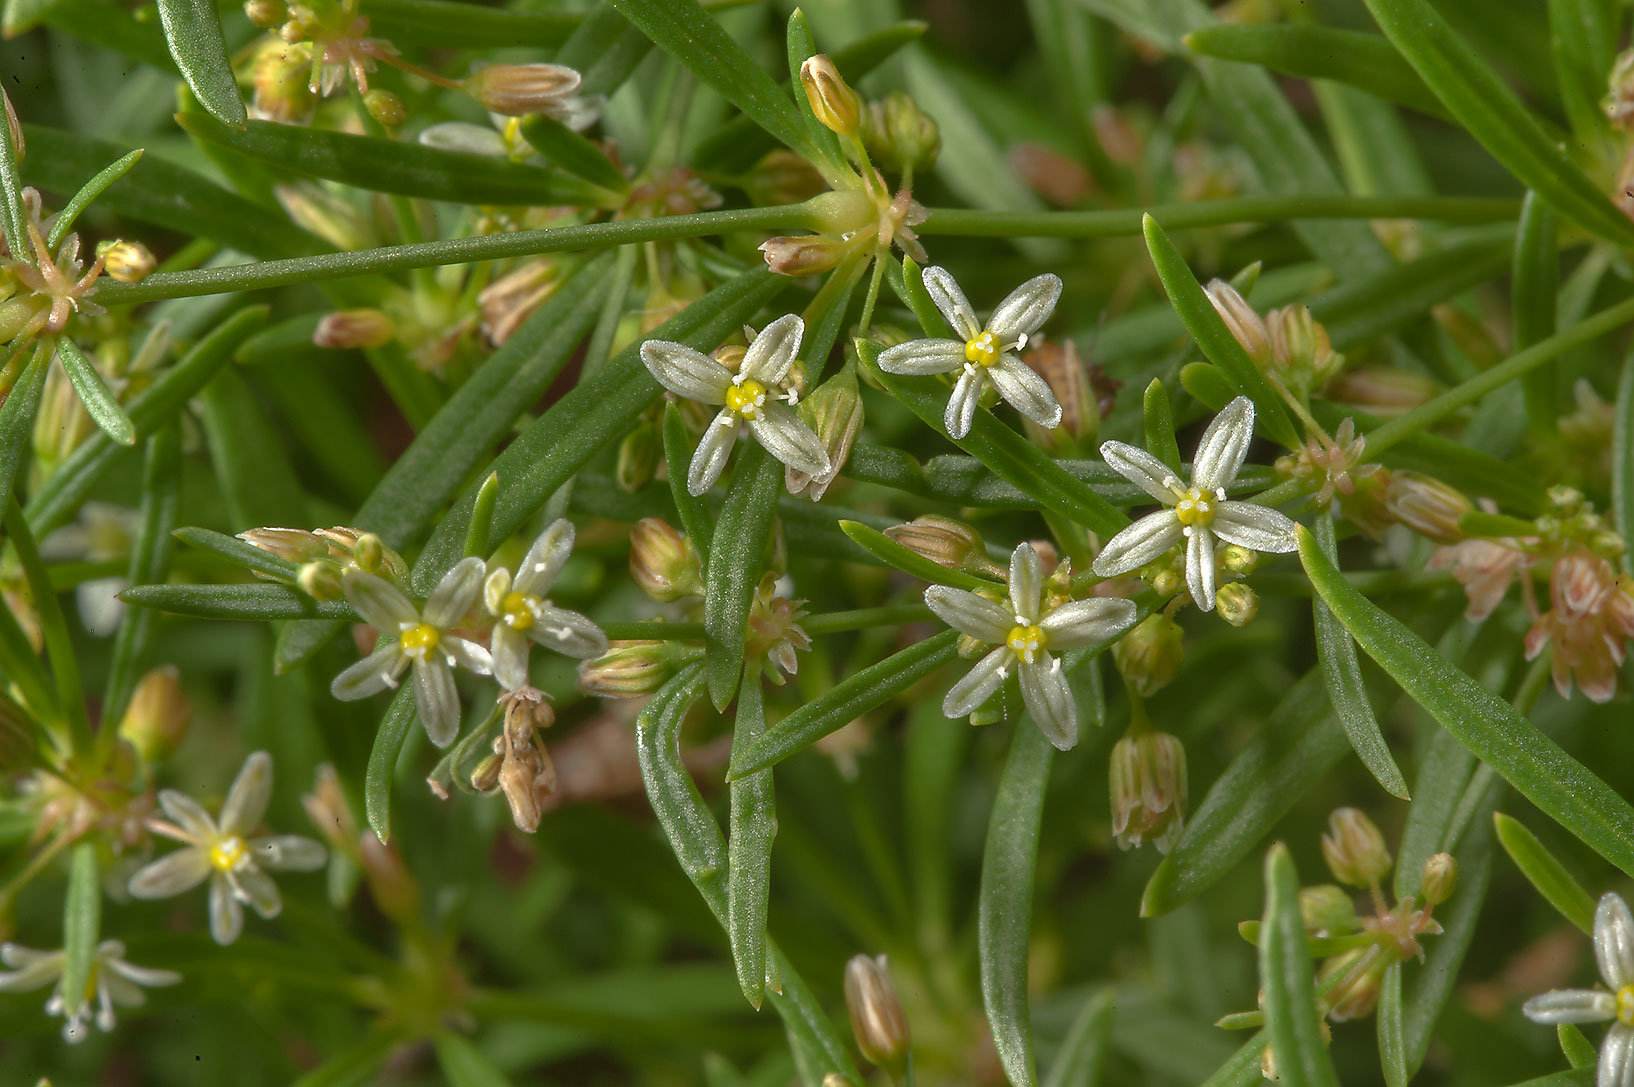 Green carpetweed (Indian Chickweed, Mollugo...M University. College Station, Texas